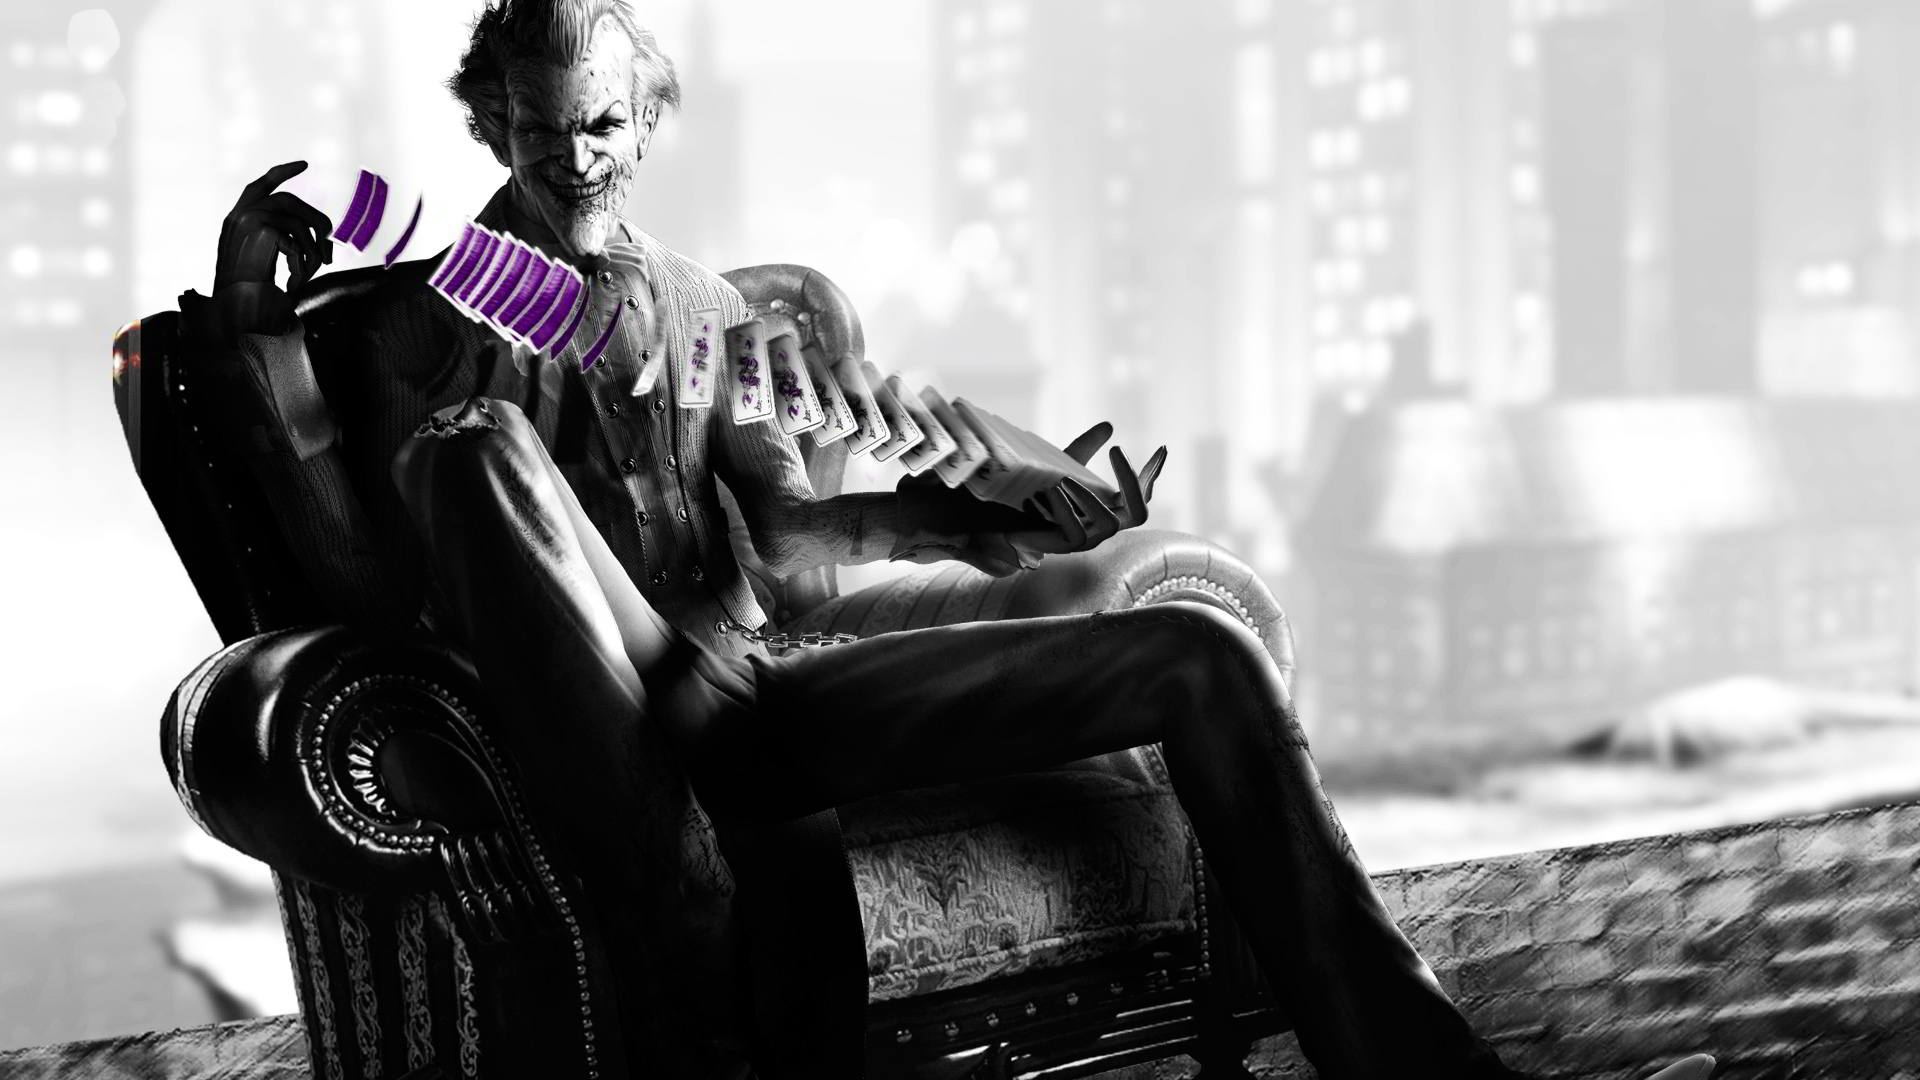 Why So Serious? HD Wallpapers